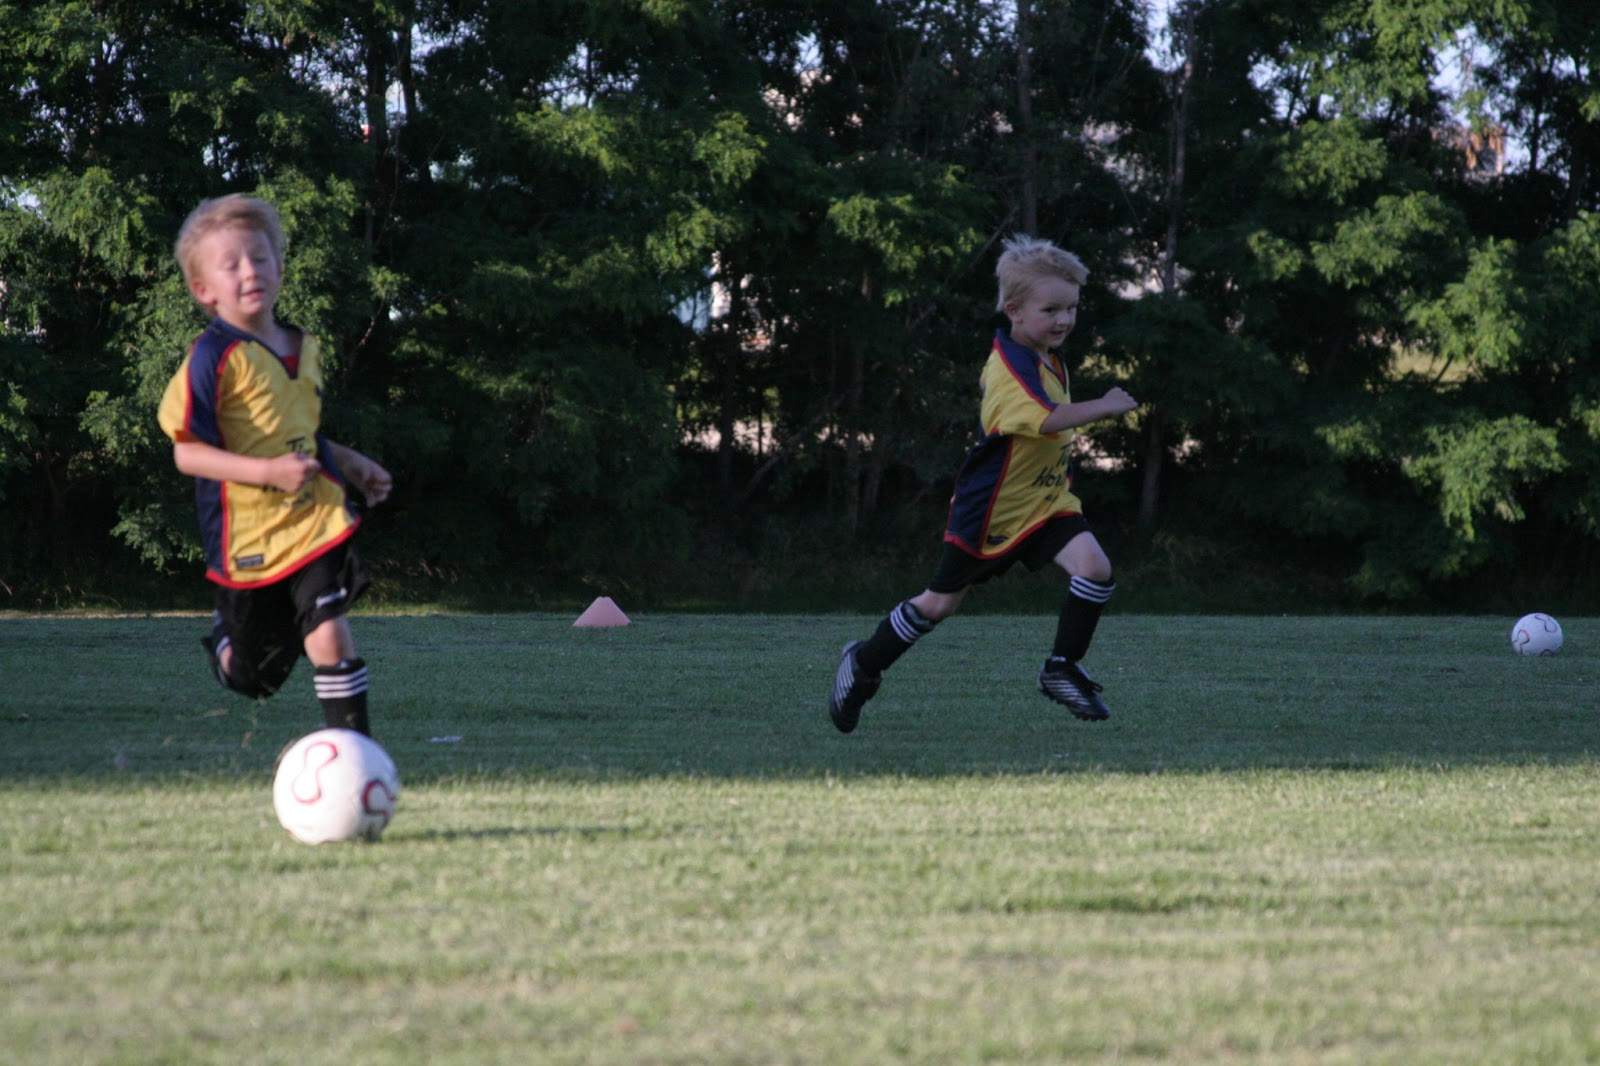 kids, sports, soccer, active